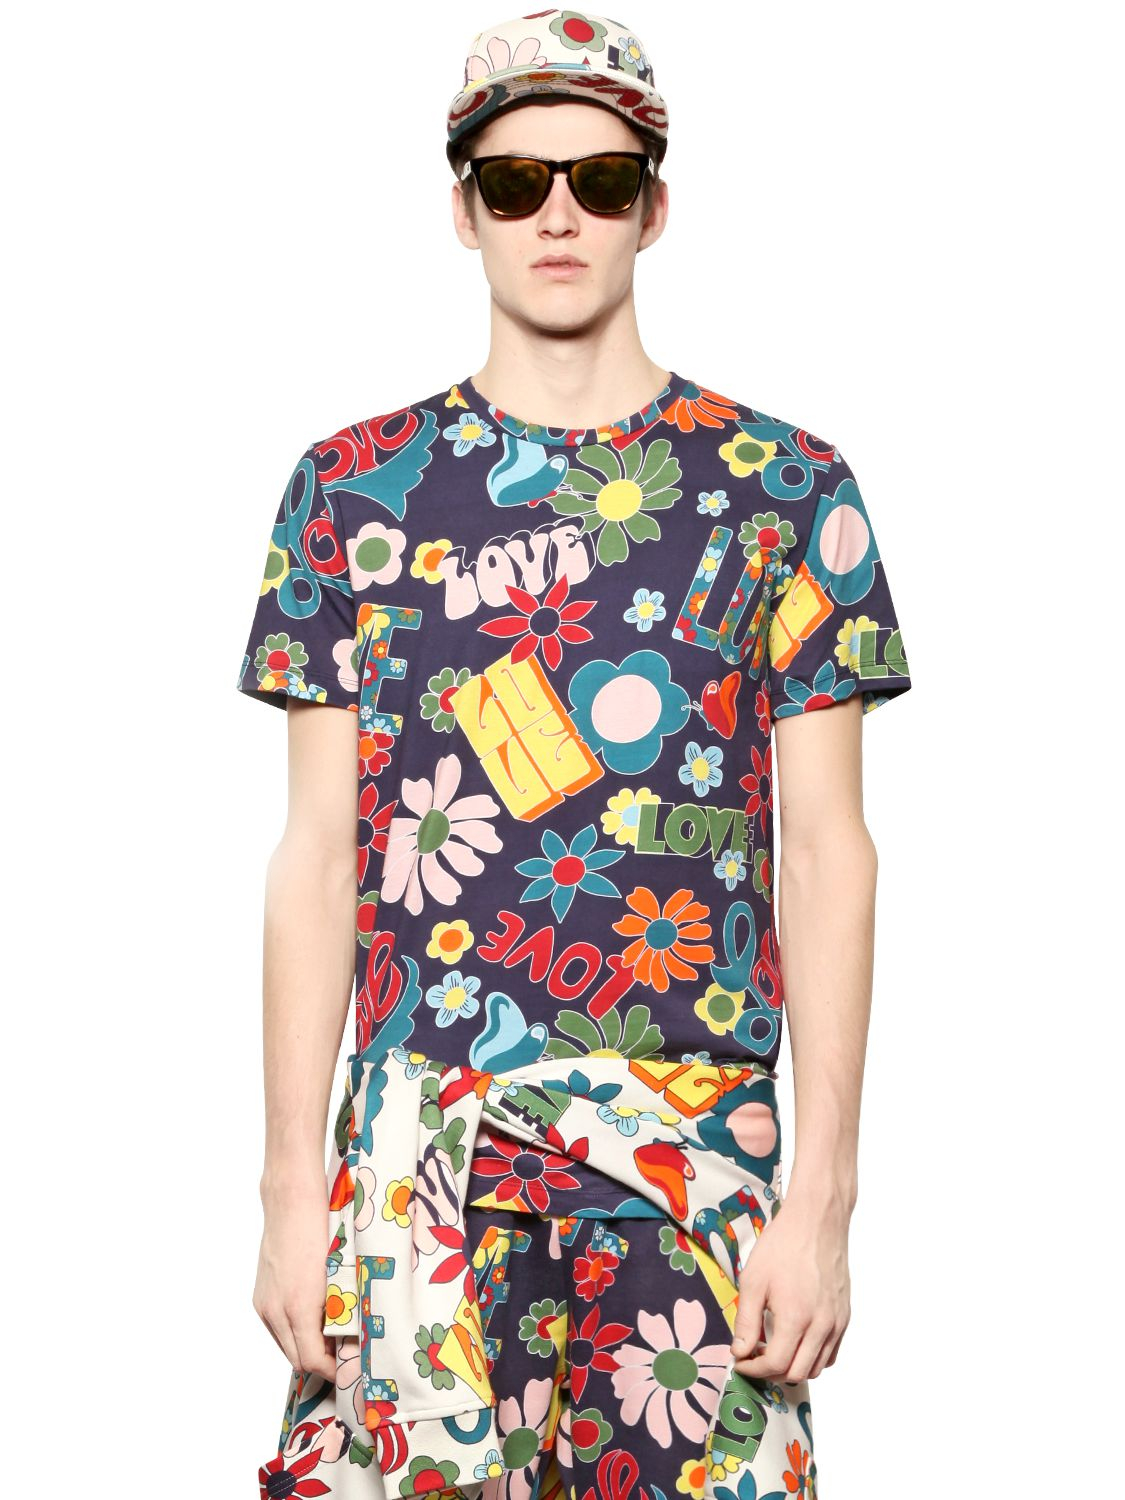 Moschino T Shirt Men